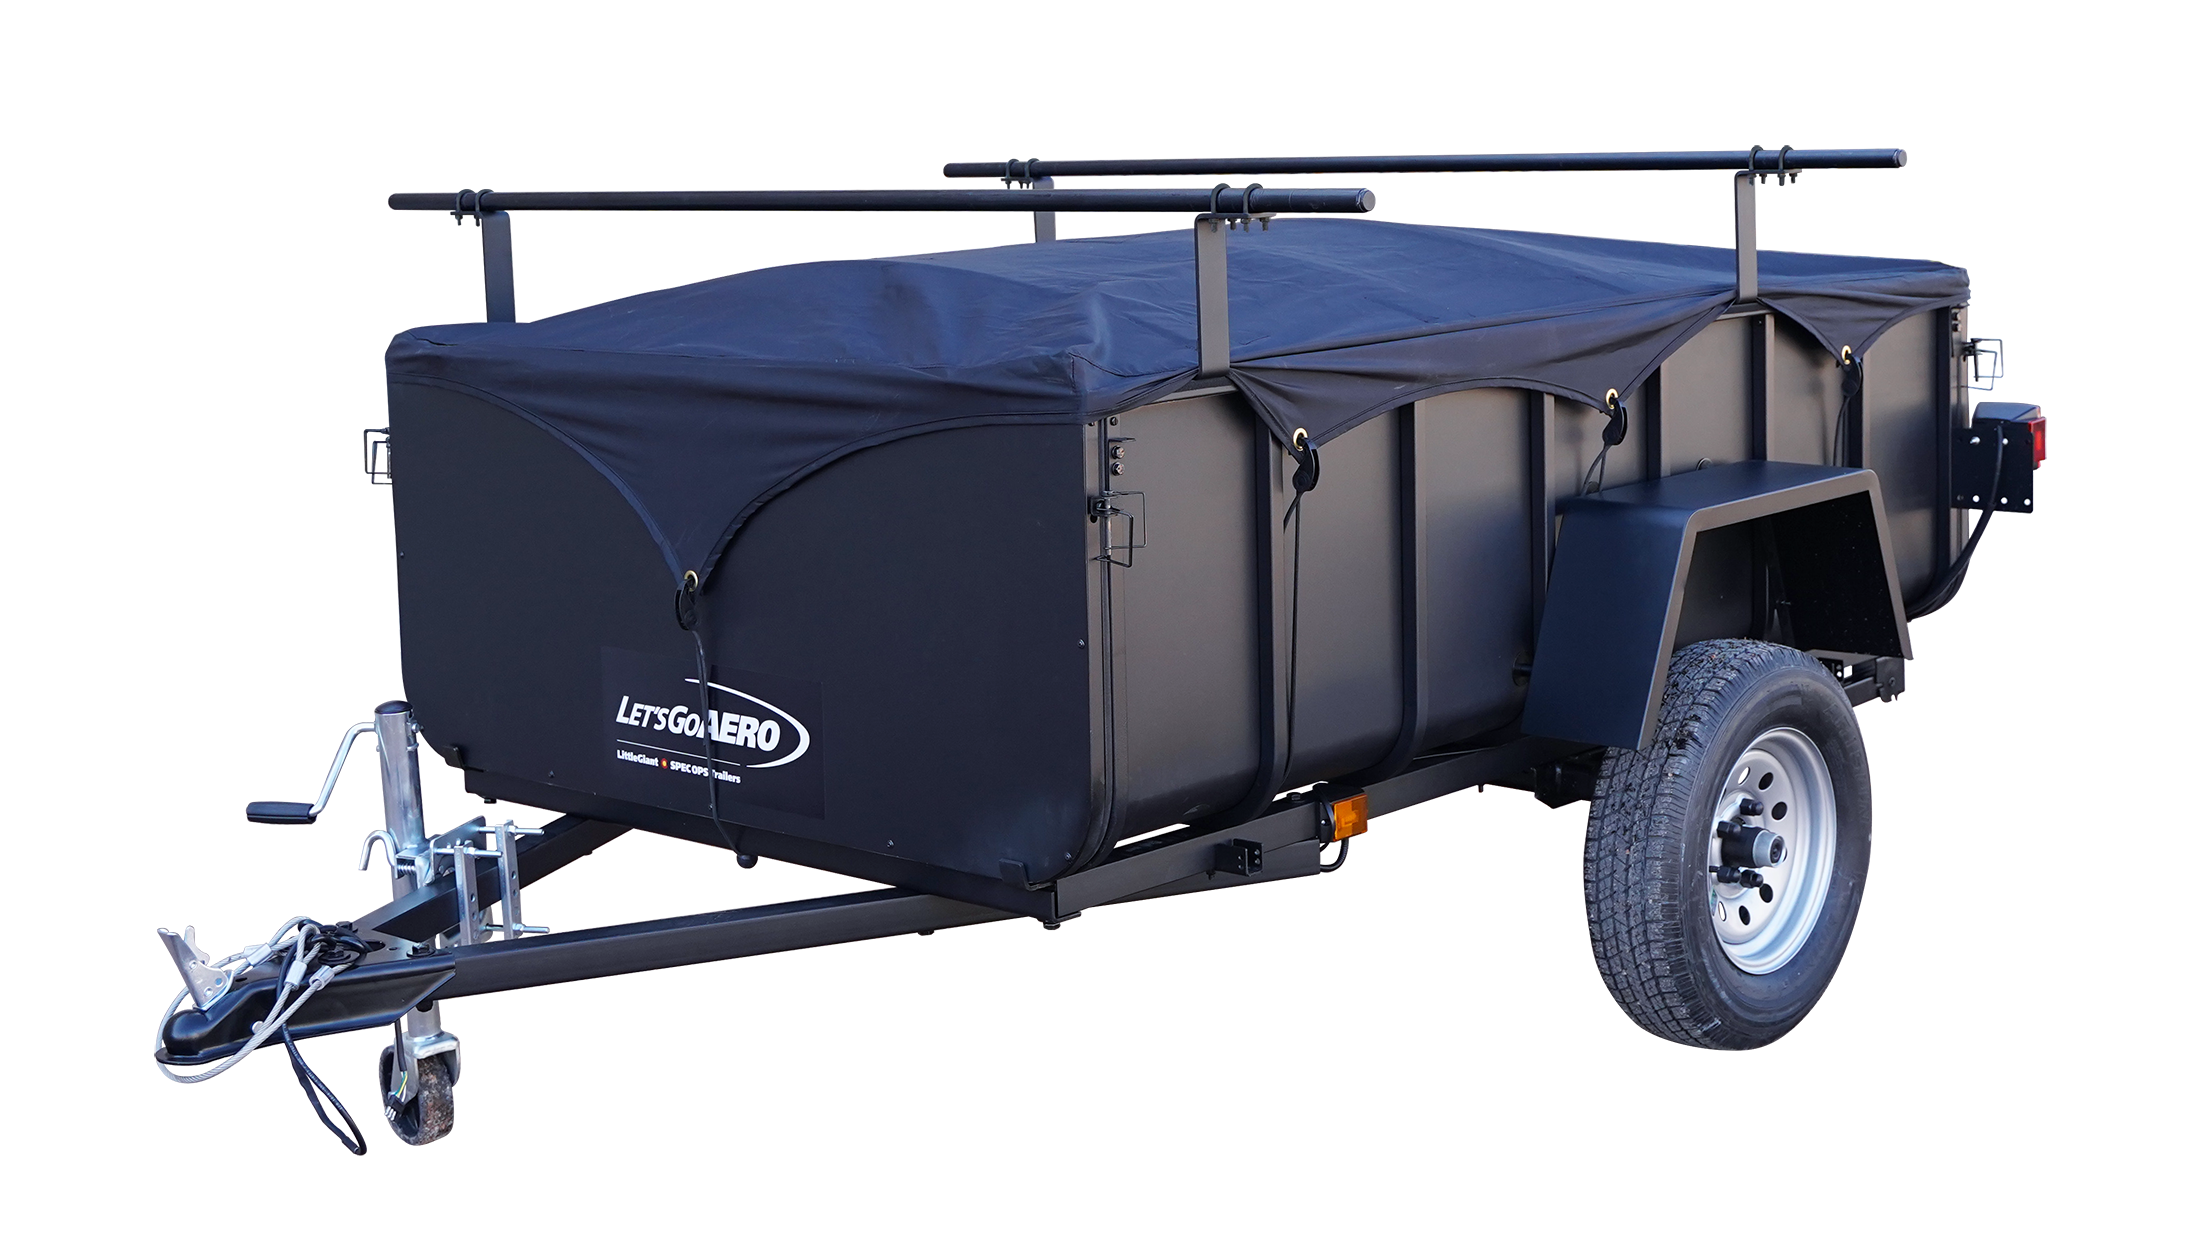 Trailer with soft cover and gear mount for boats and bikes